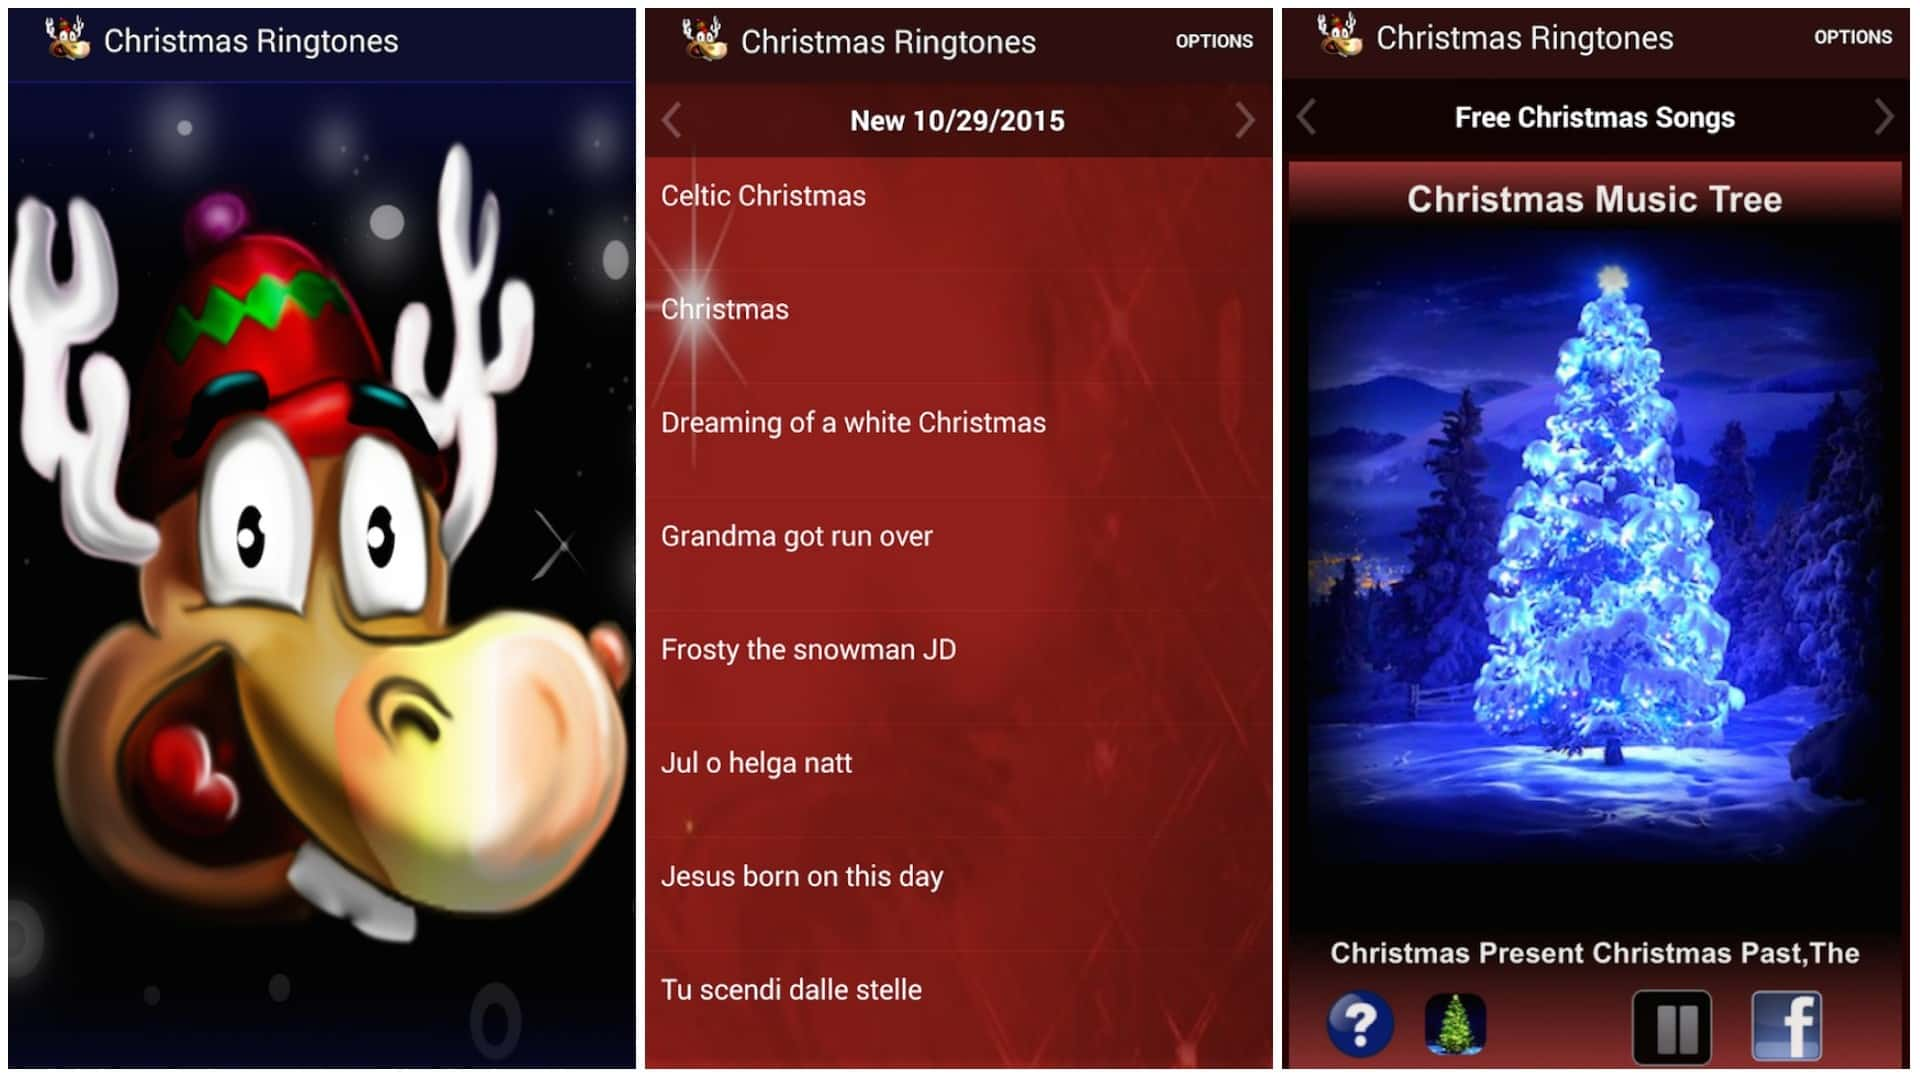 Christmas Ringtones 2019 app image December 2019